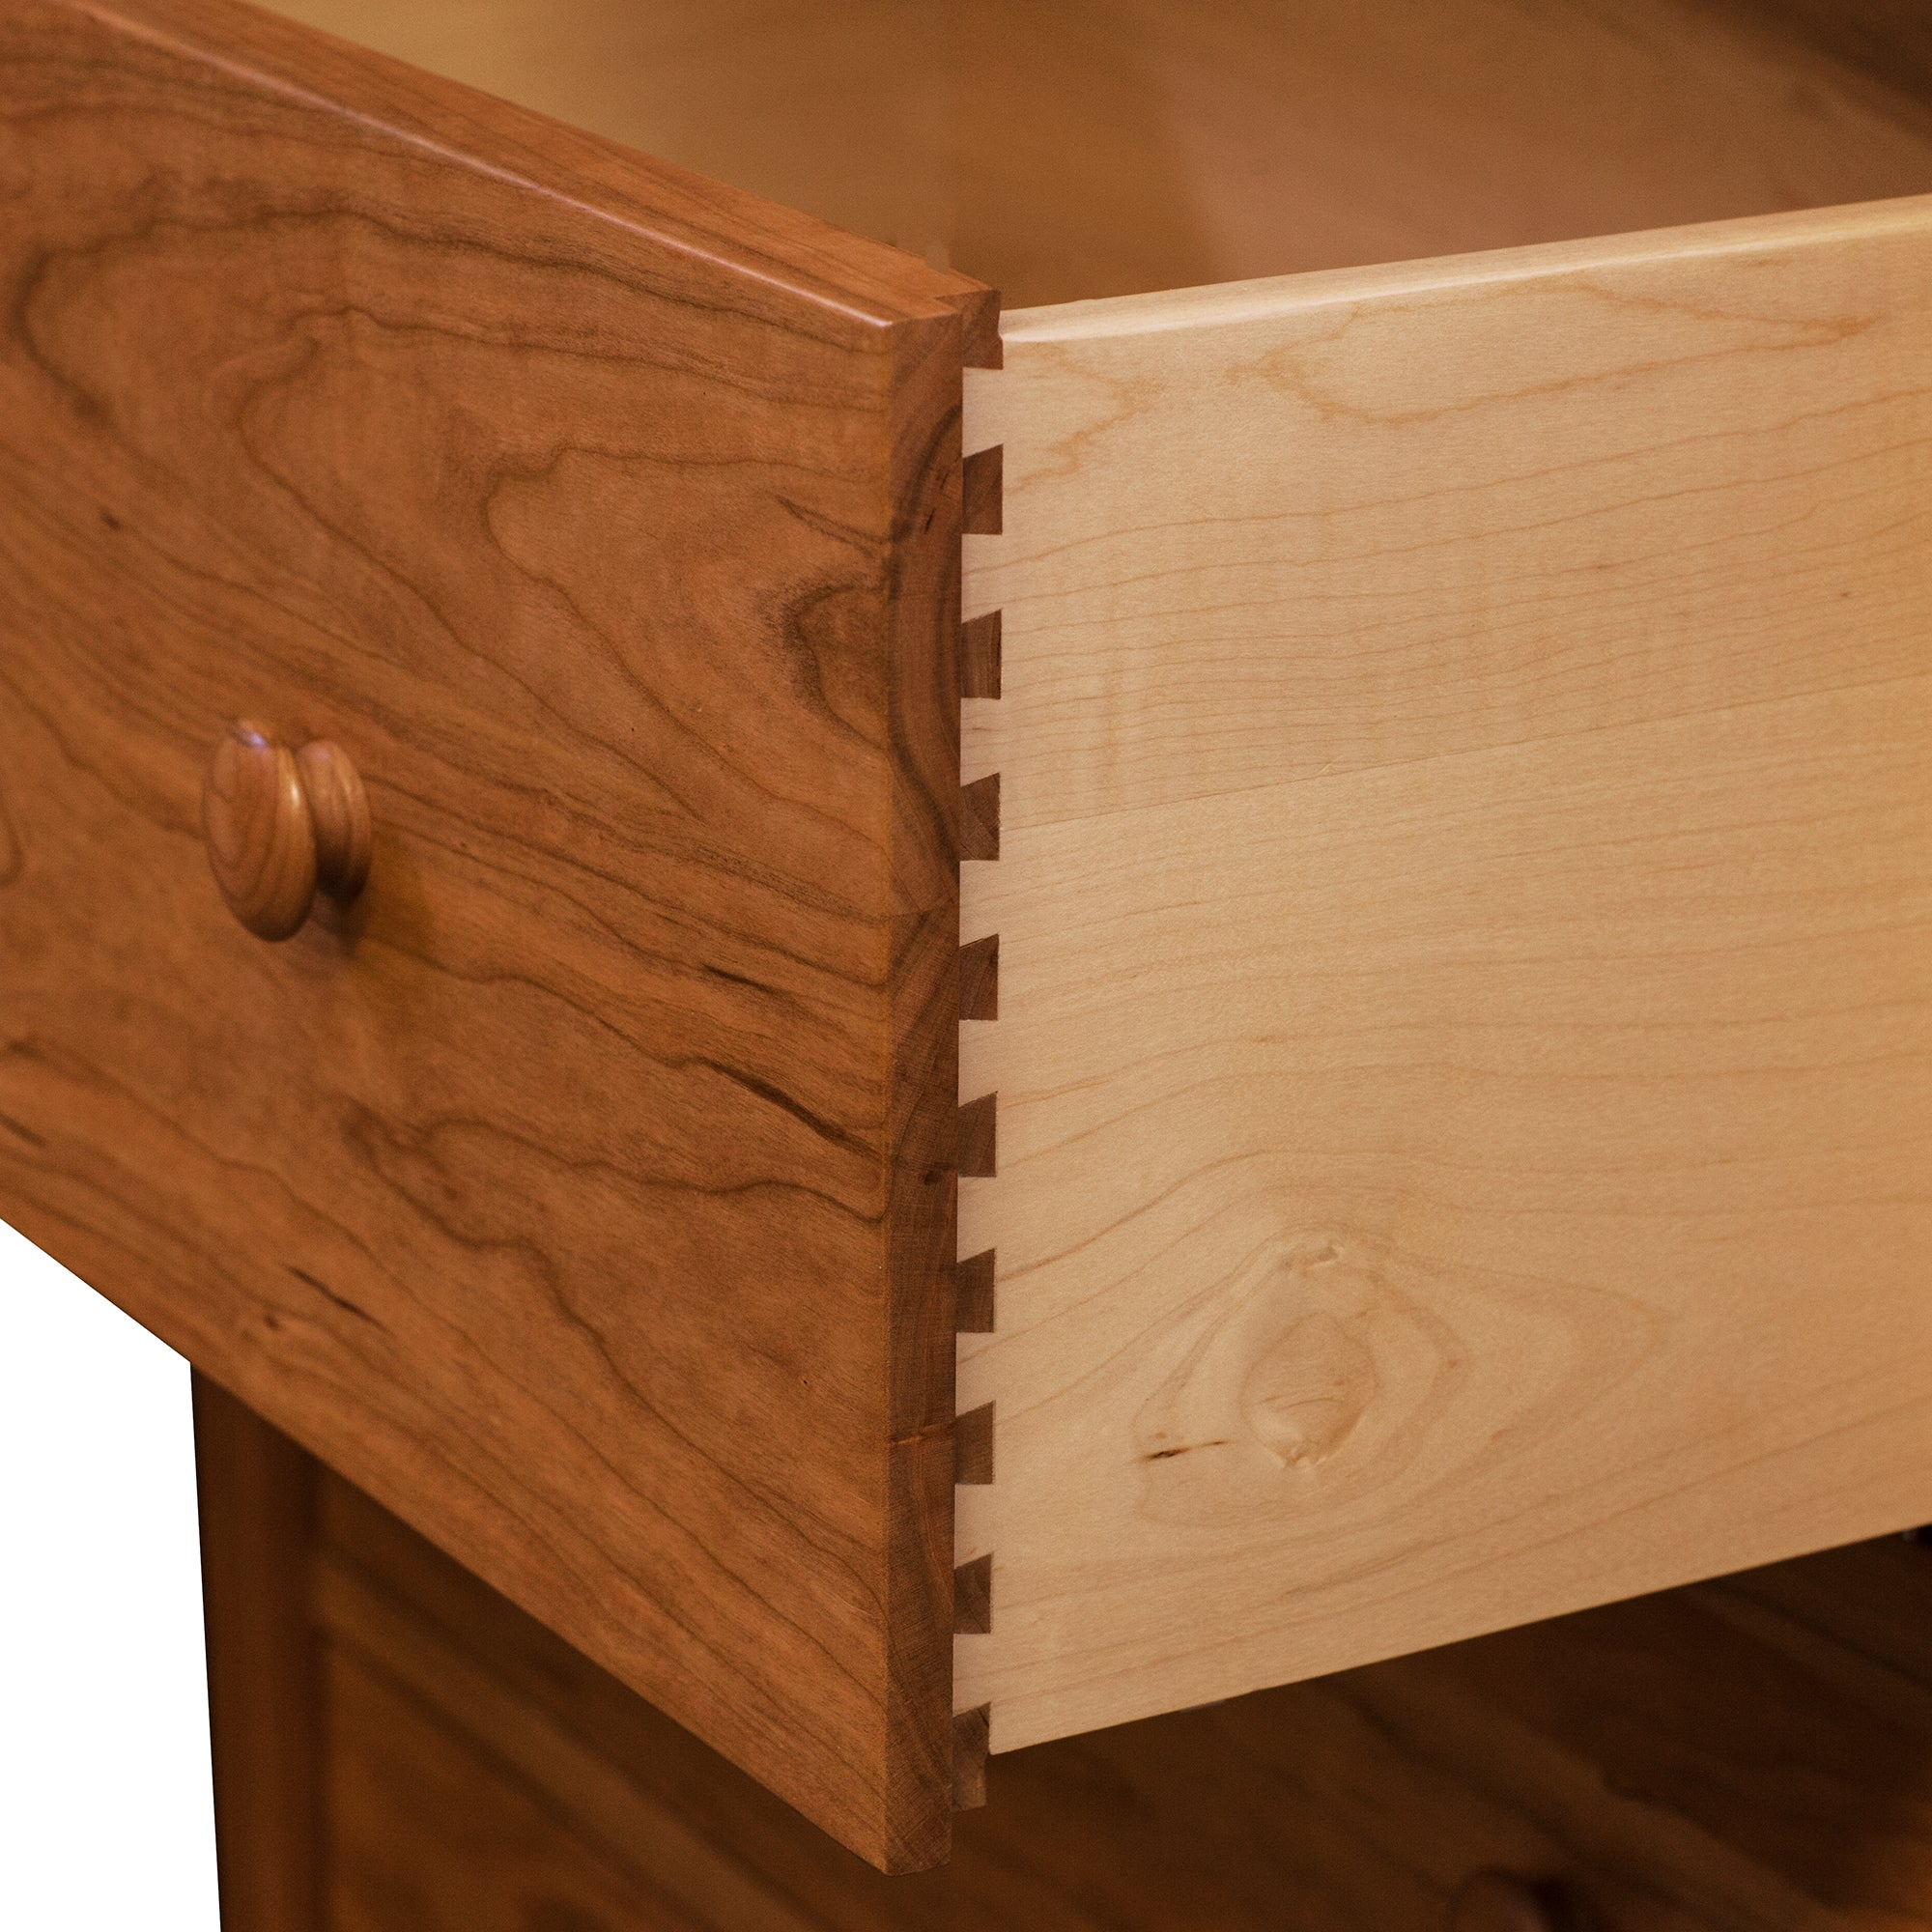 Open drawer of solid cherry Bethel Chest showing dovetail joinery